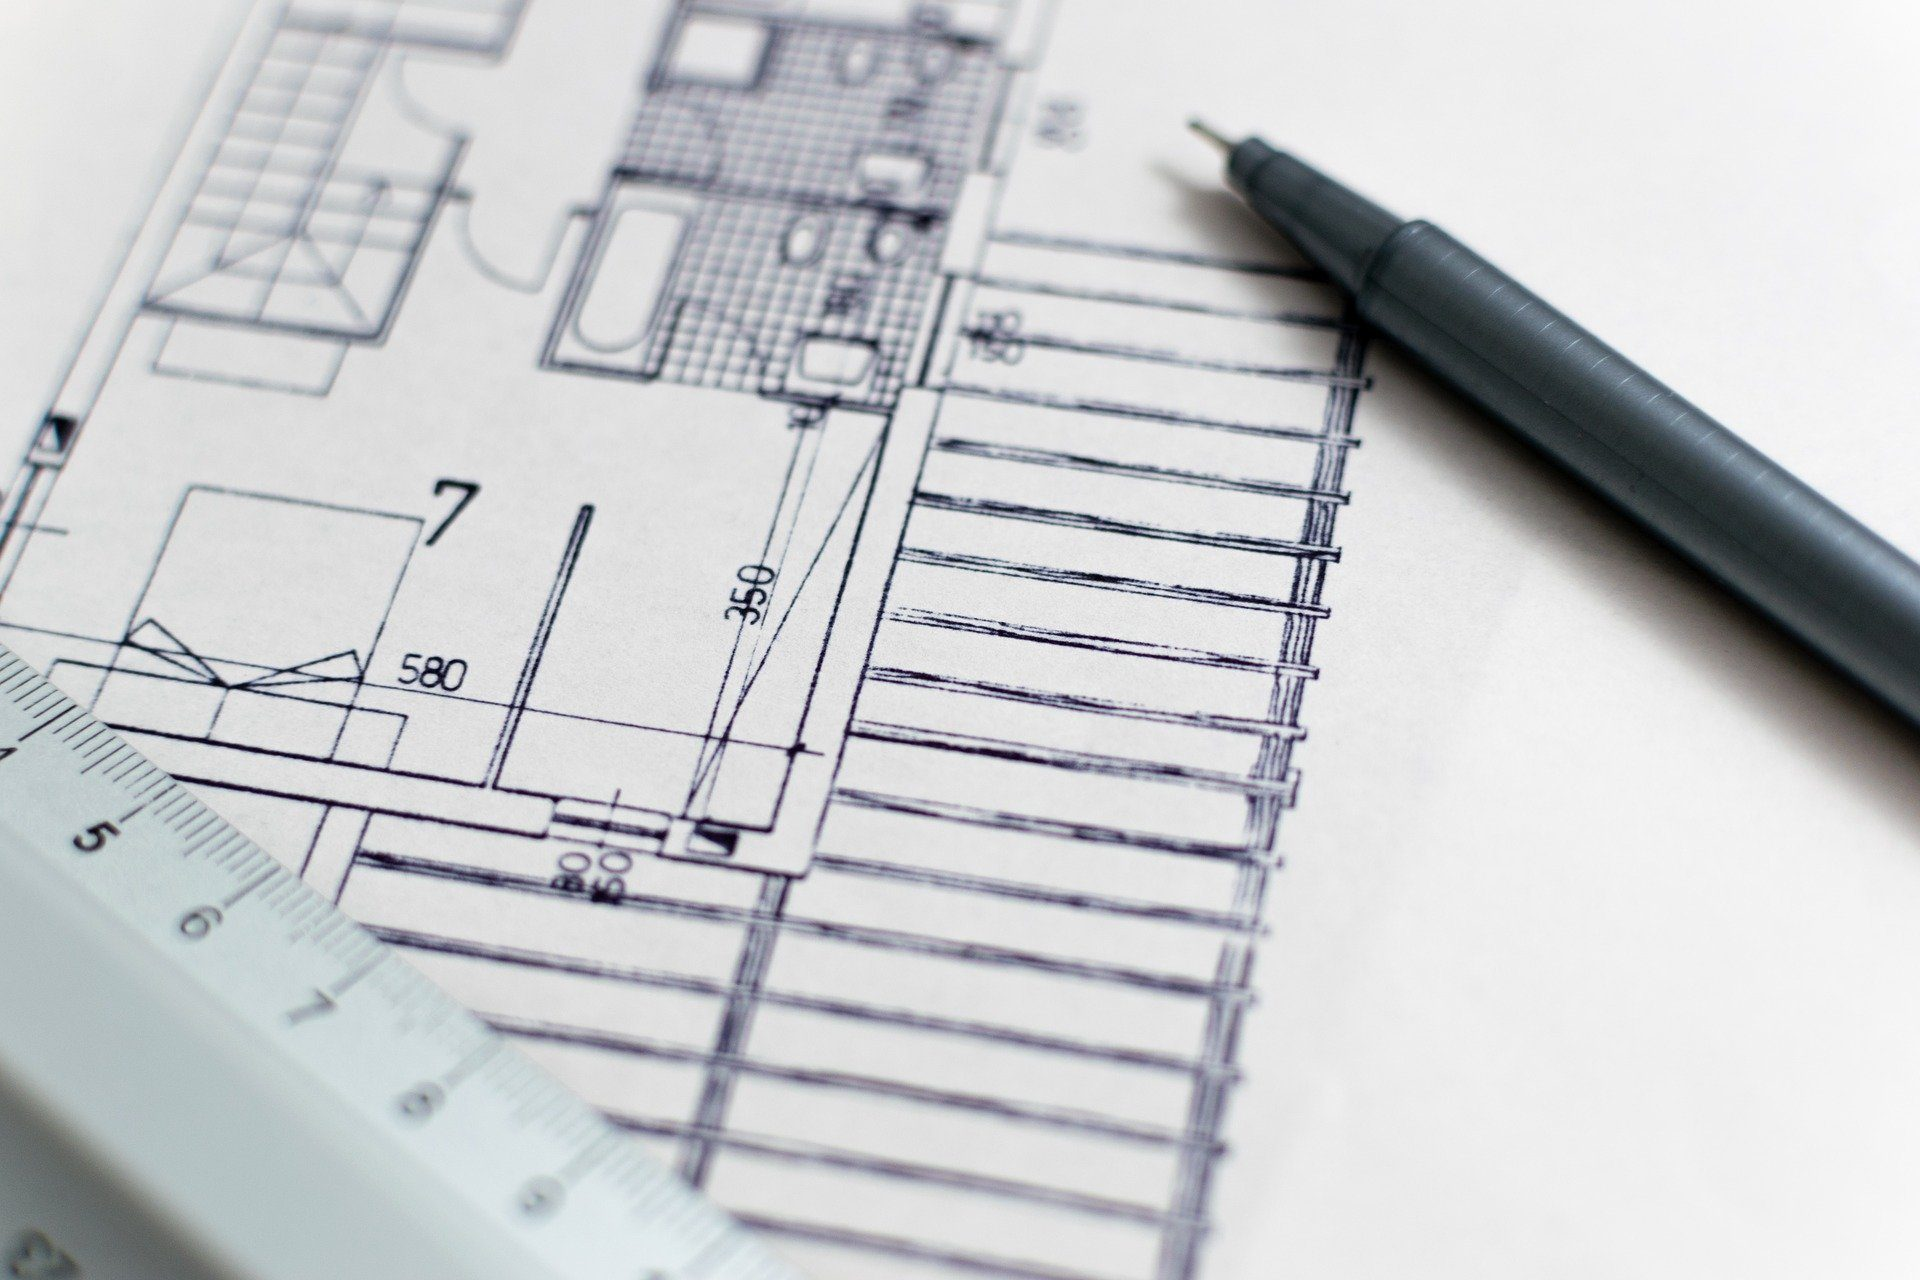 ARCHITECT'S FEES FOR A HOUSE EXTENSION